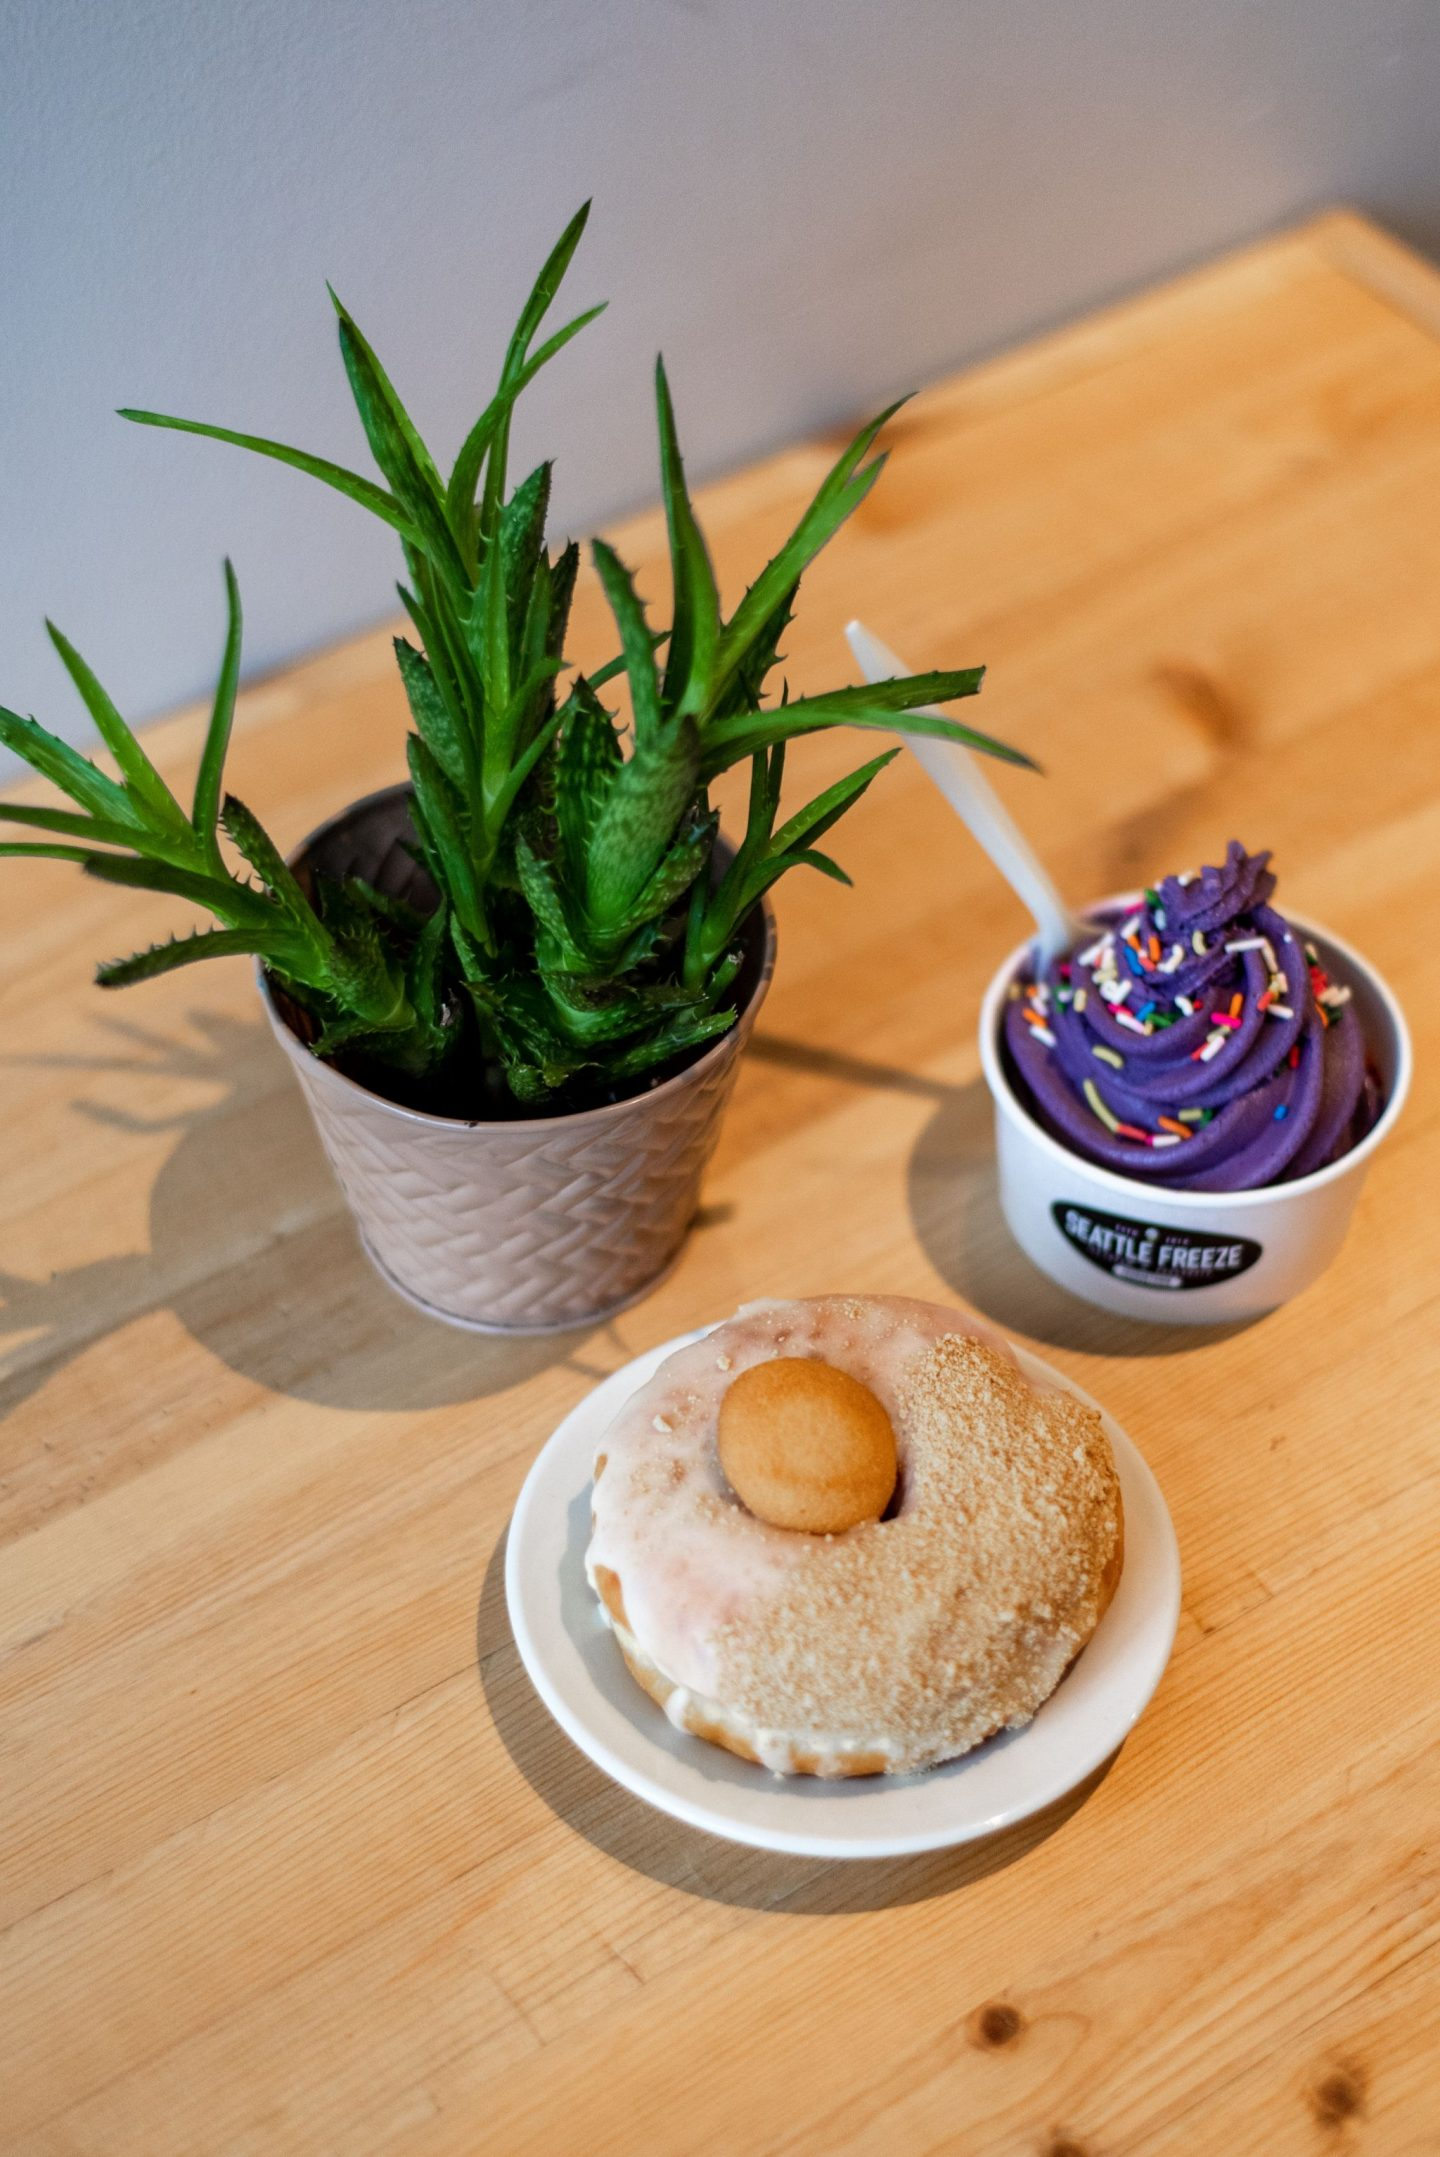 Seattle Freeze - Ube Ice Cream and doughnut